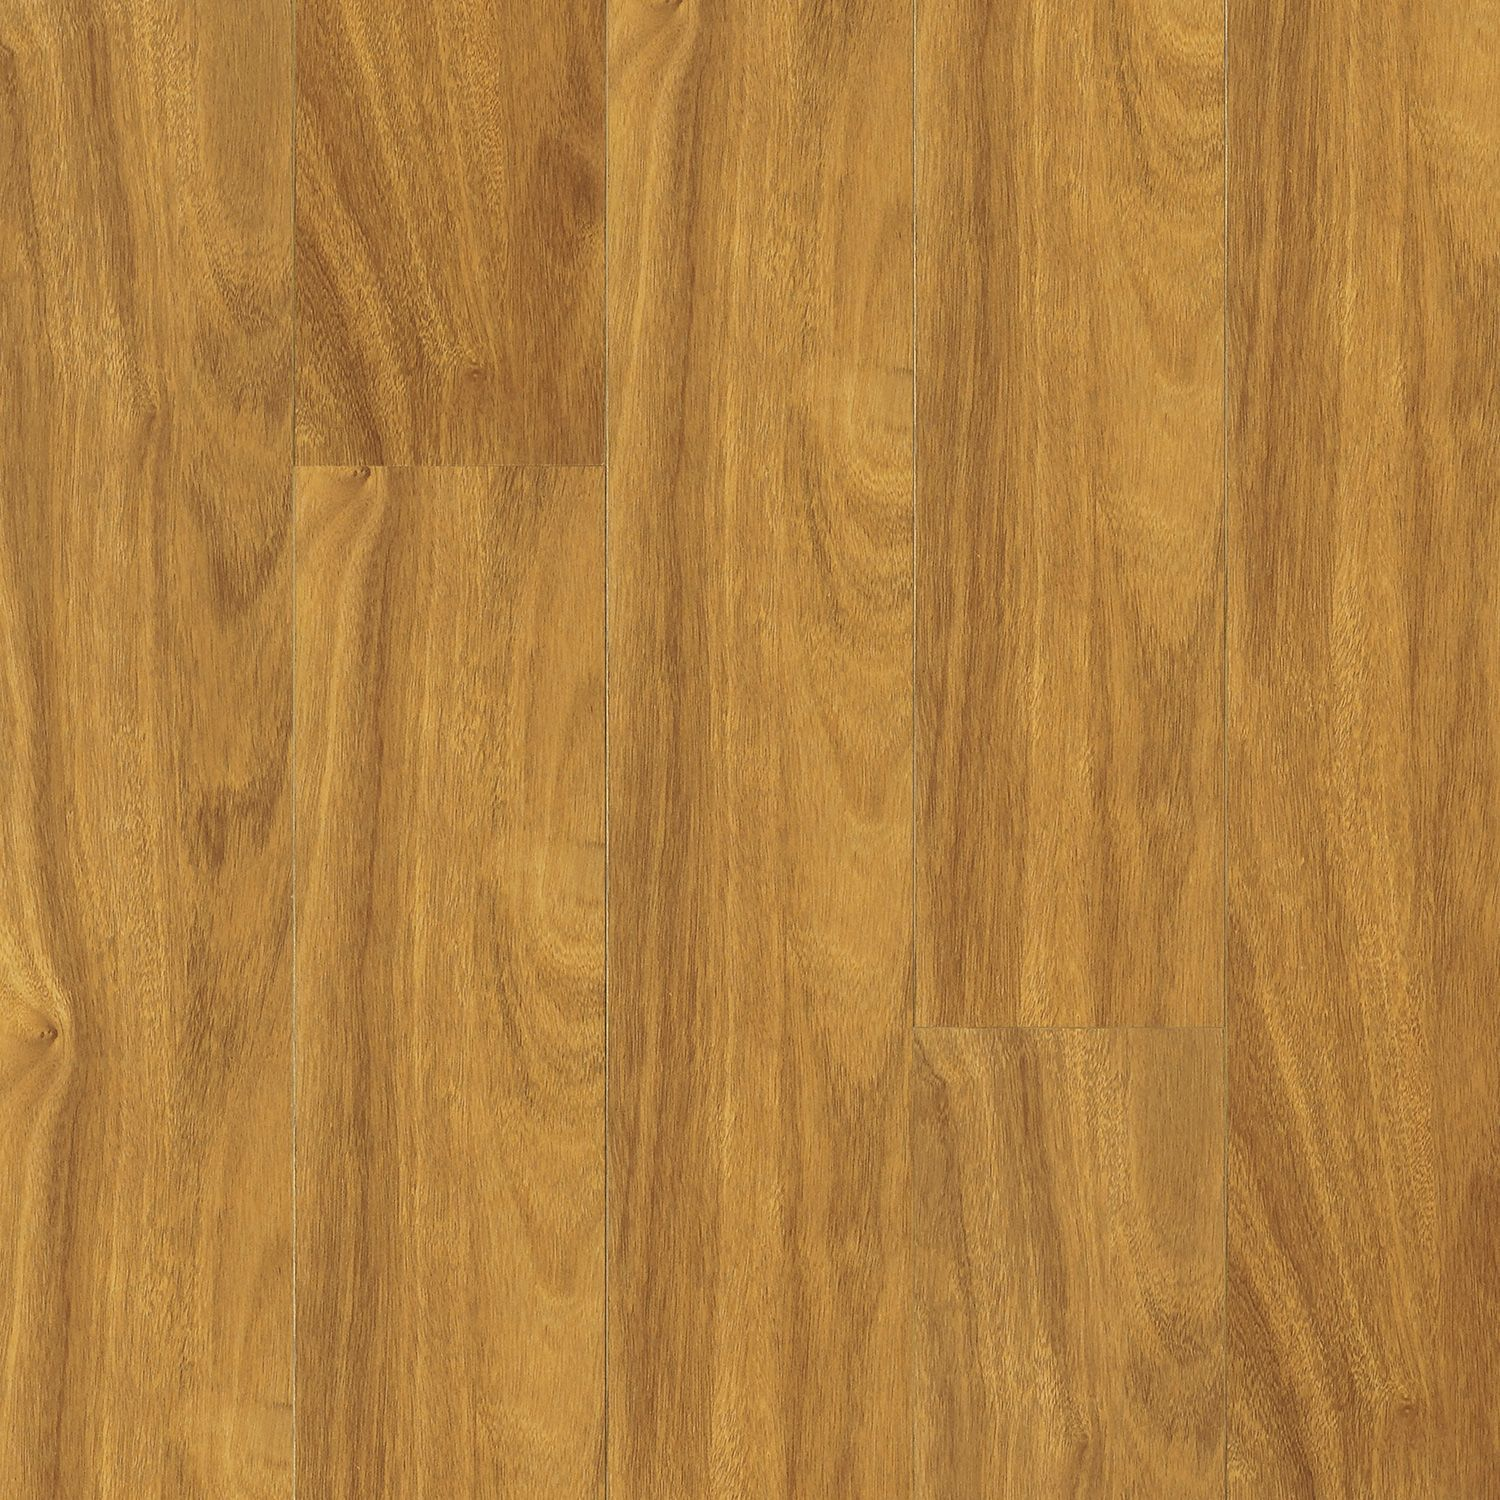 Armstrong Grand Illusions Afzelia Laminate Flooring Sam S Club Flooring Flooring Sale Laminate Flooring